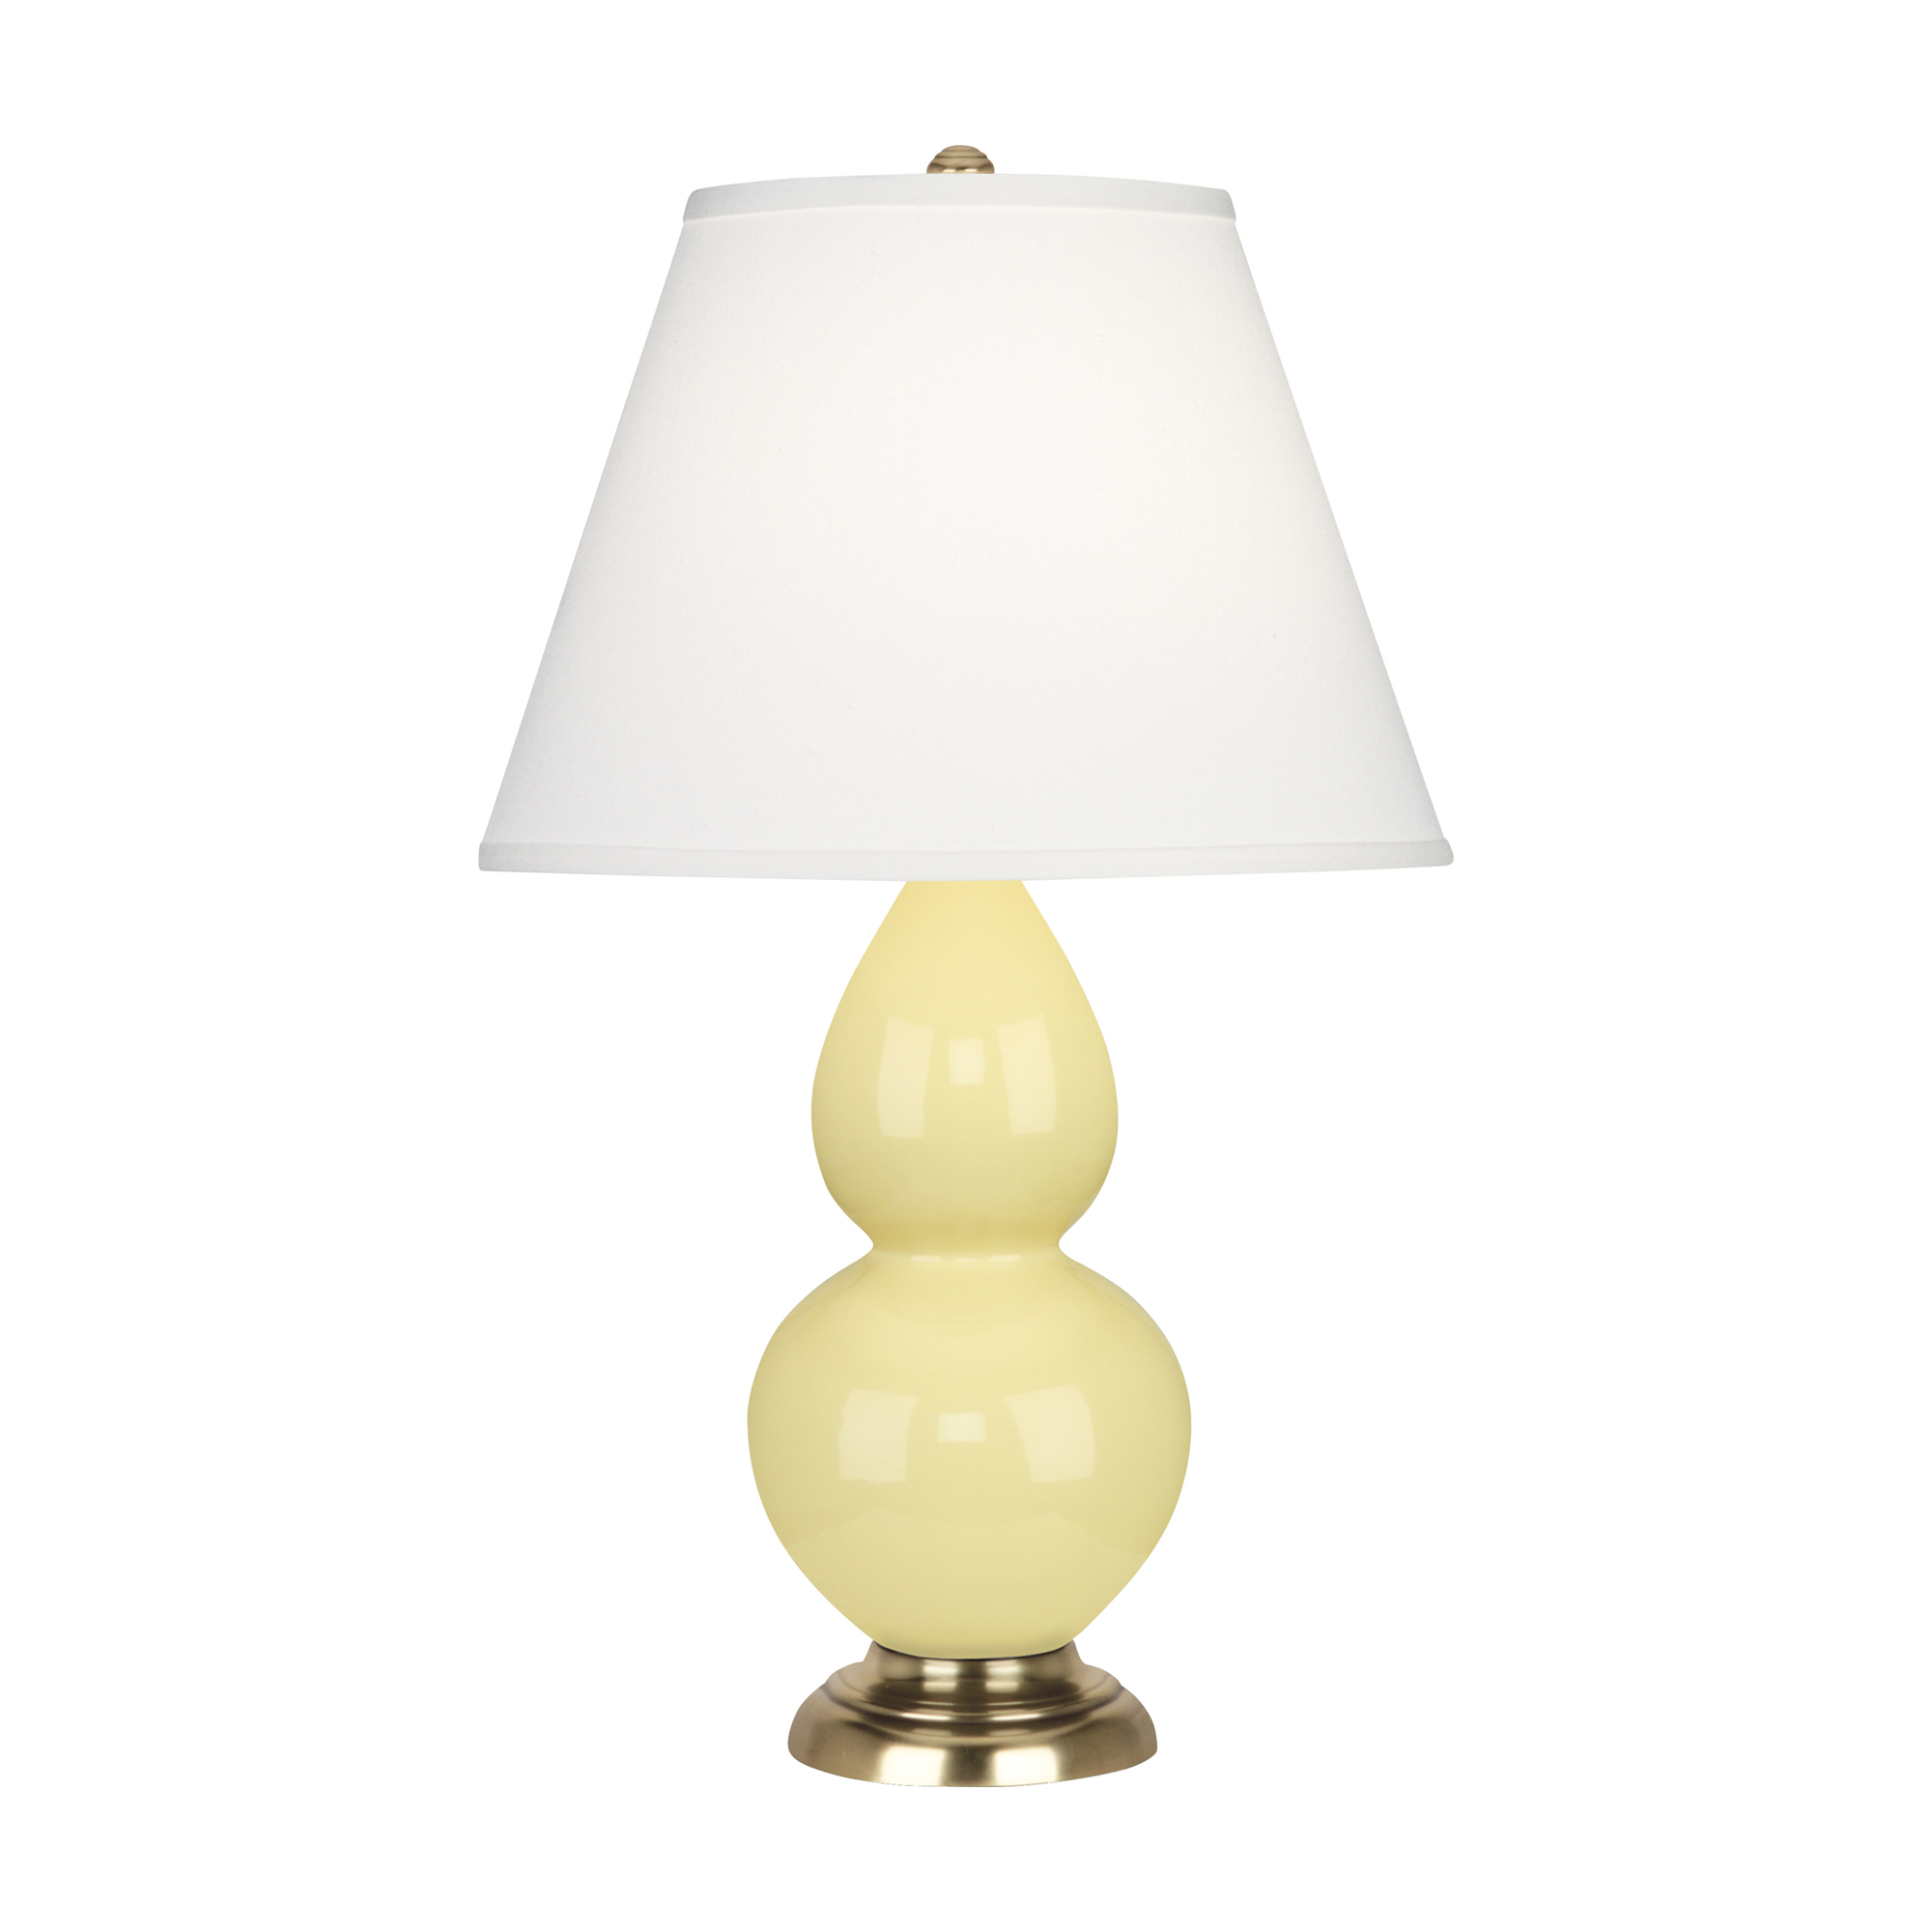 Small Double Gourd Accent Lamp Style #1614X